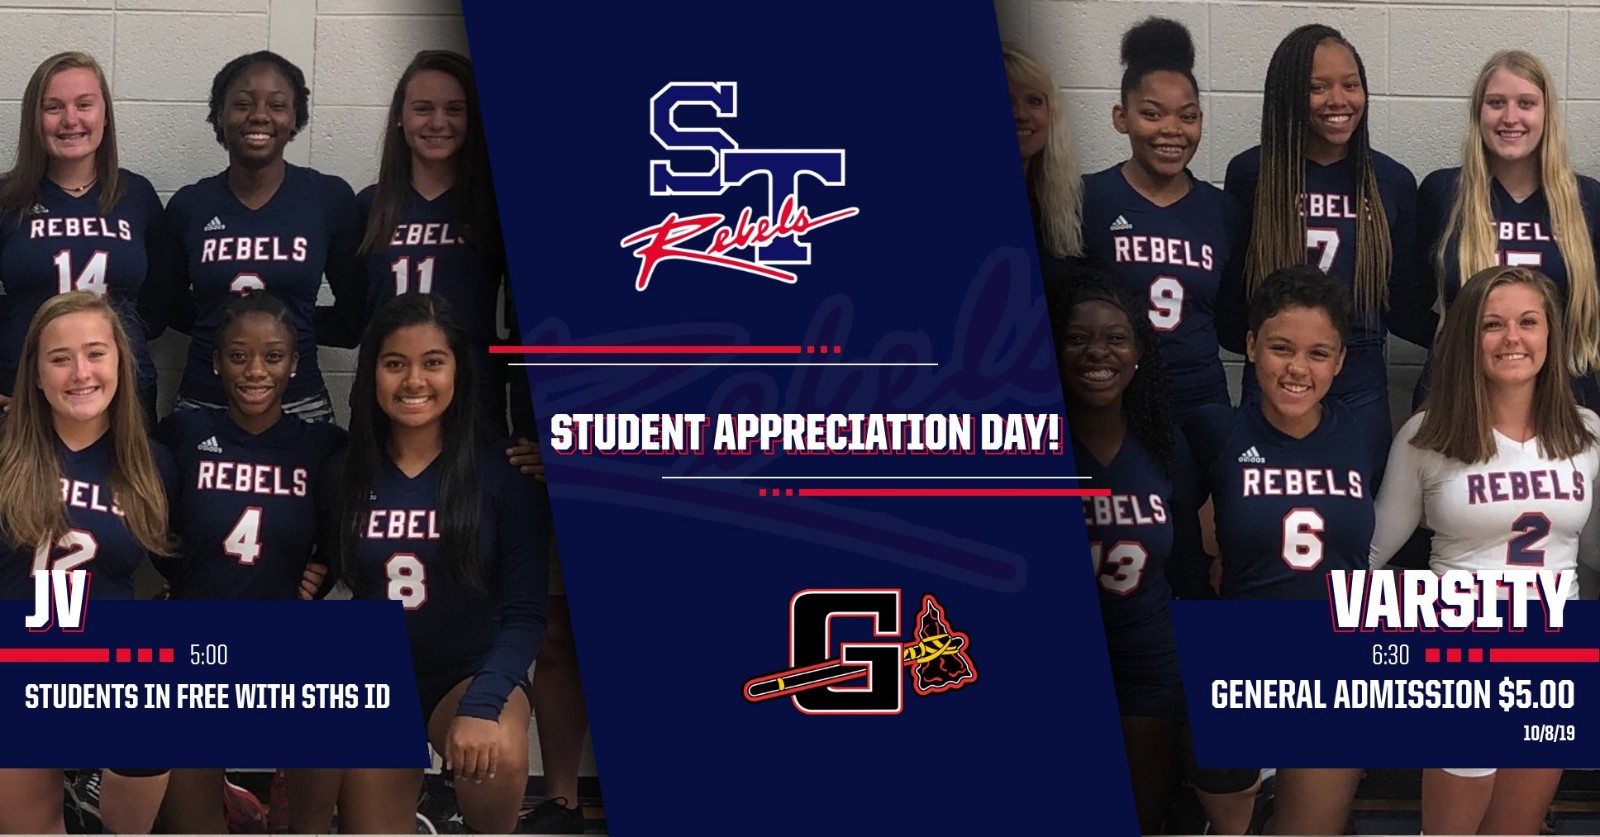 Student Appreciation Day 10/8 Free Admission to Volleyball Game with STHS Student ID